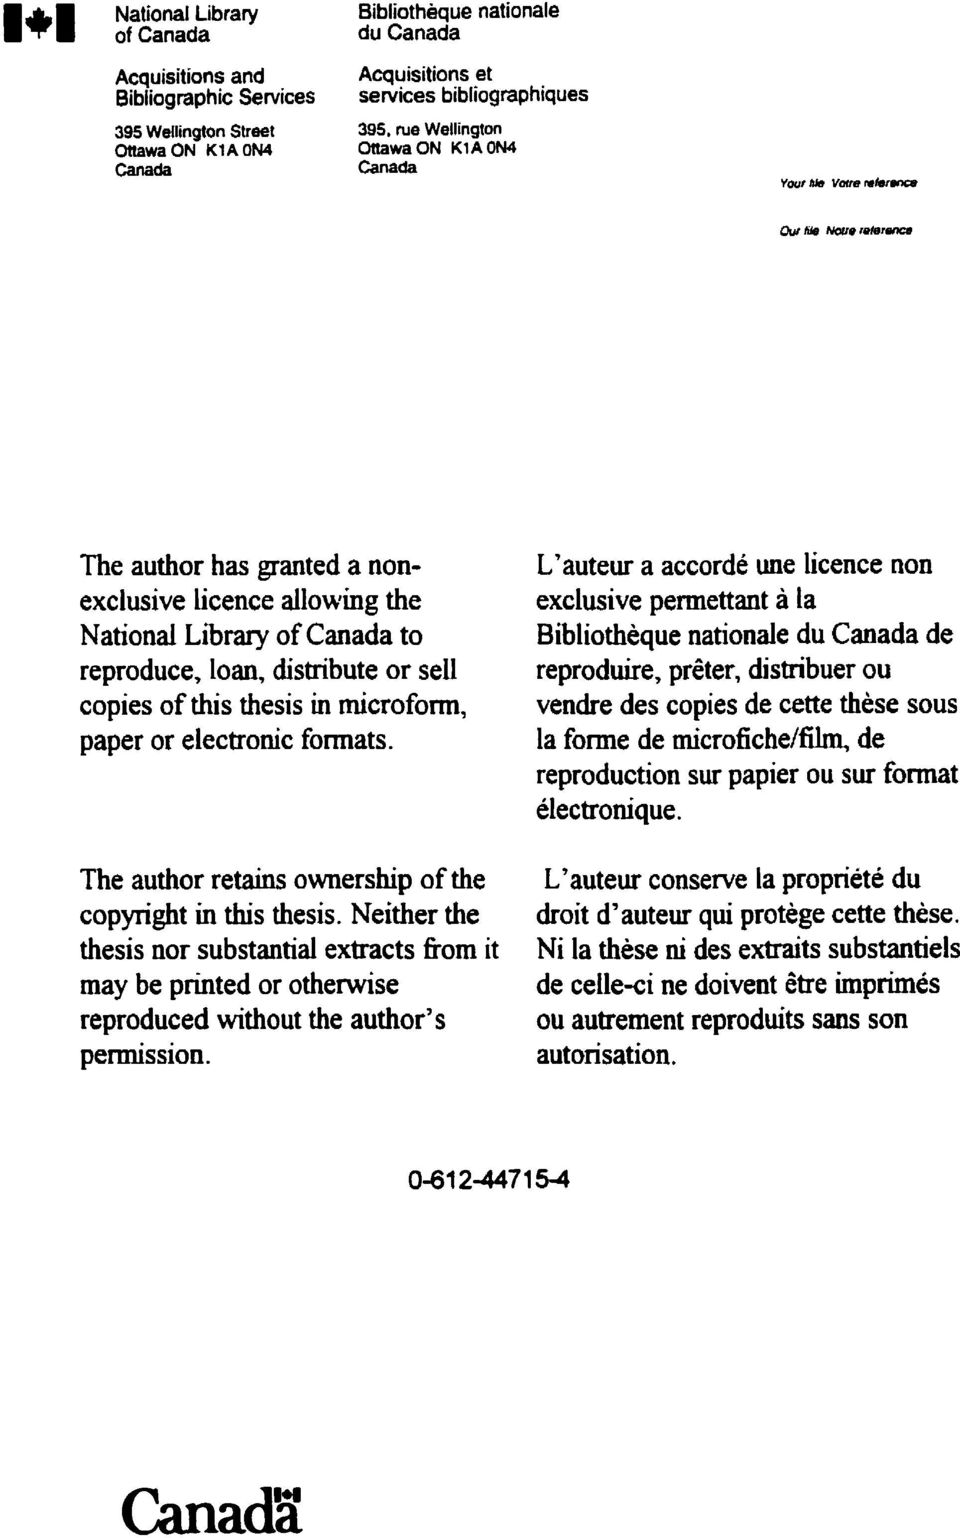 paper or electronic formats. The author retains ownership of the copyright in this thesis.